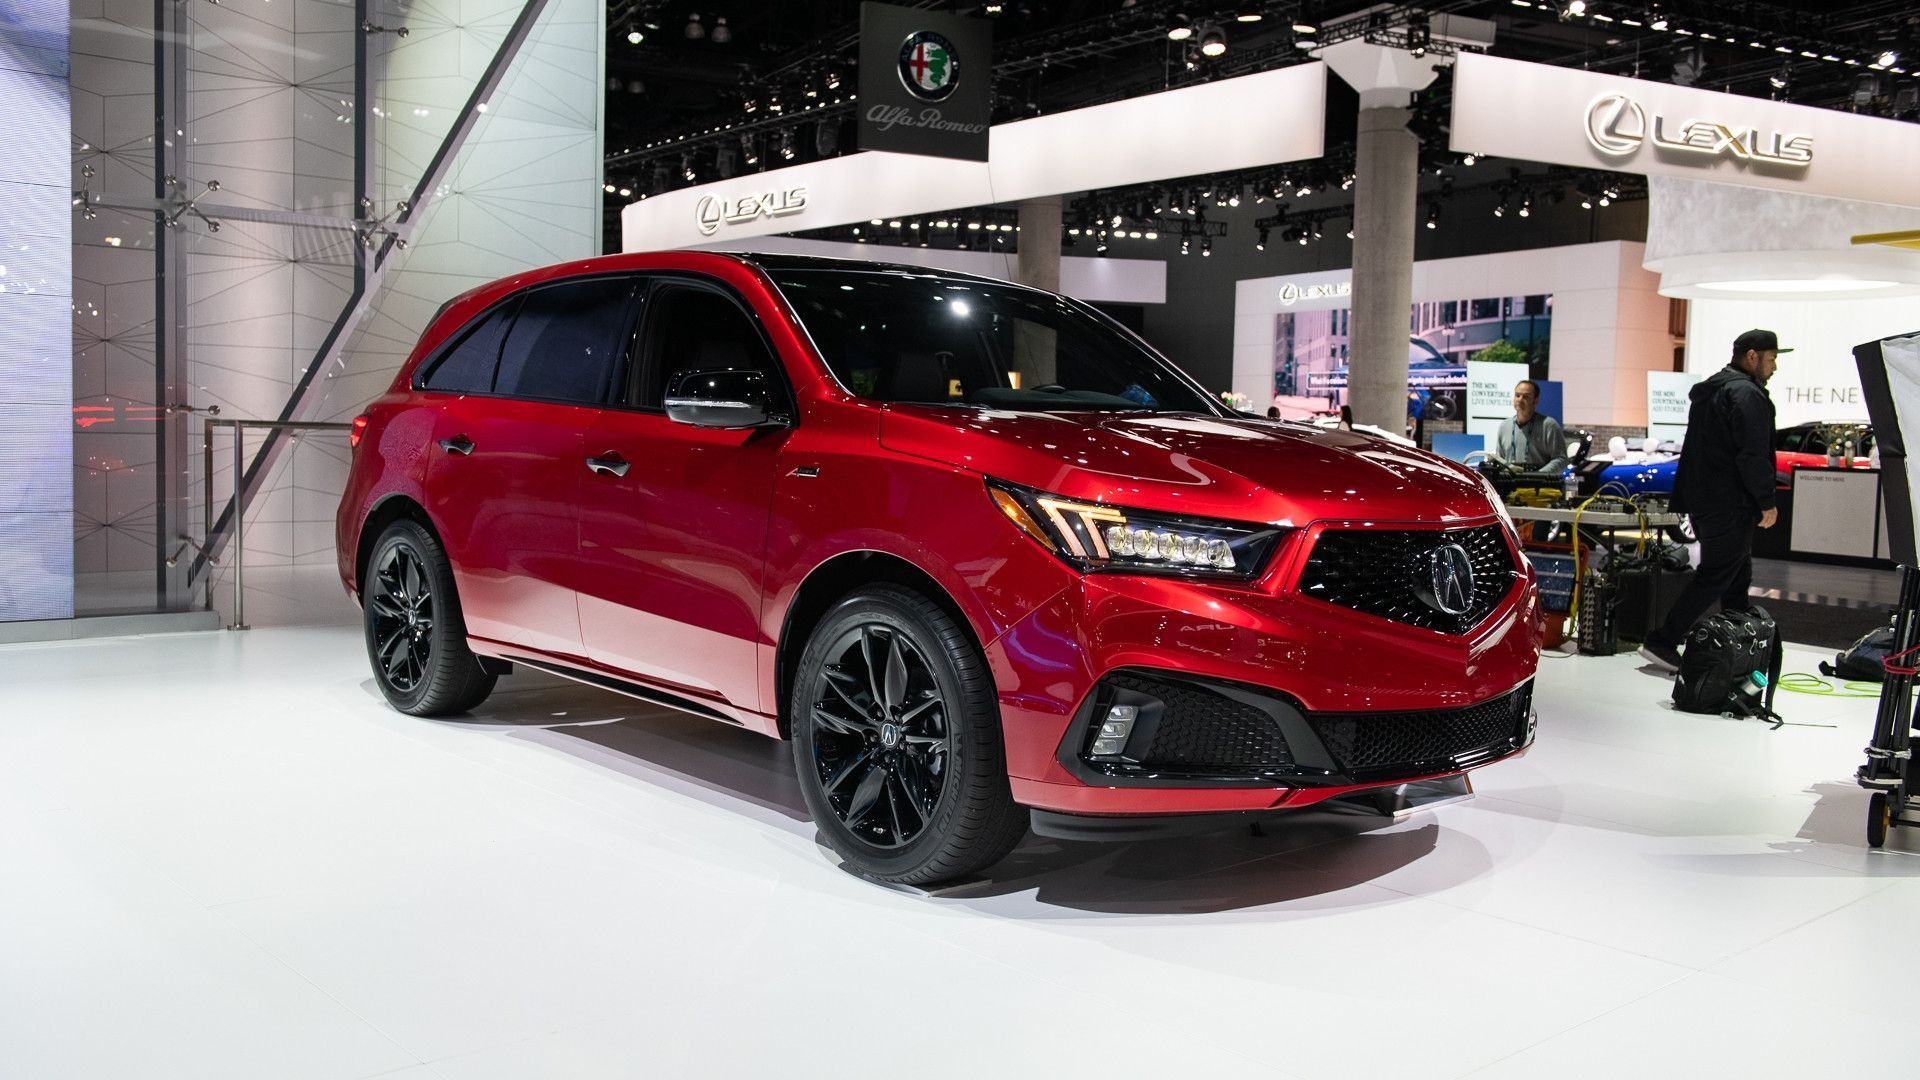 Pictures Of 2020 Acura Mdx Spy Shoot Car Models Shoot Pictures Of 2020 Acura Mdx Spy Shoot In 2020